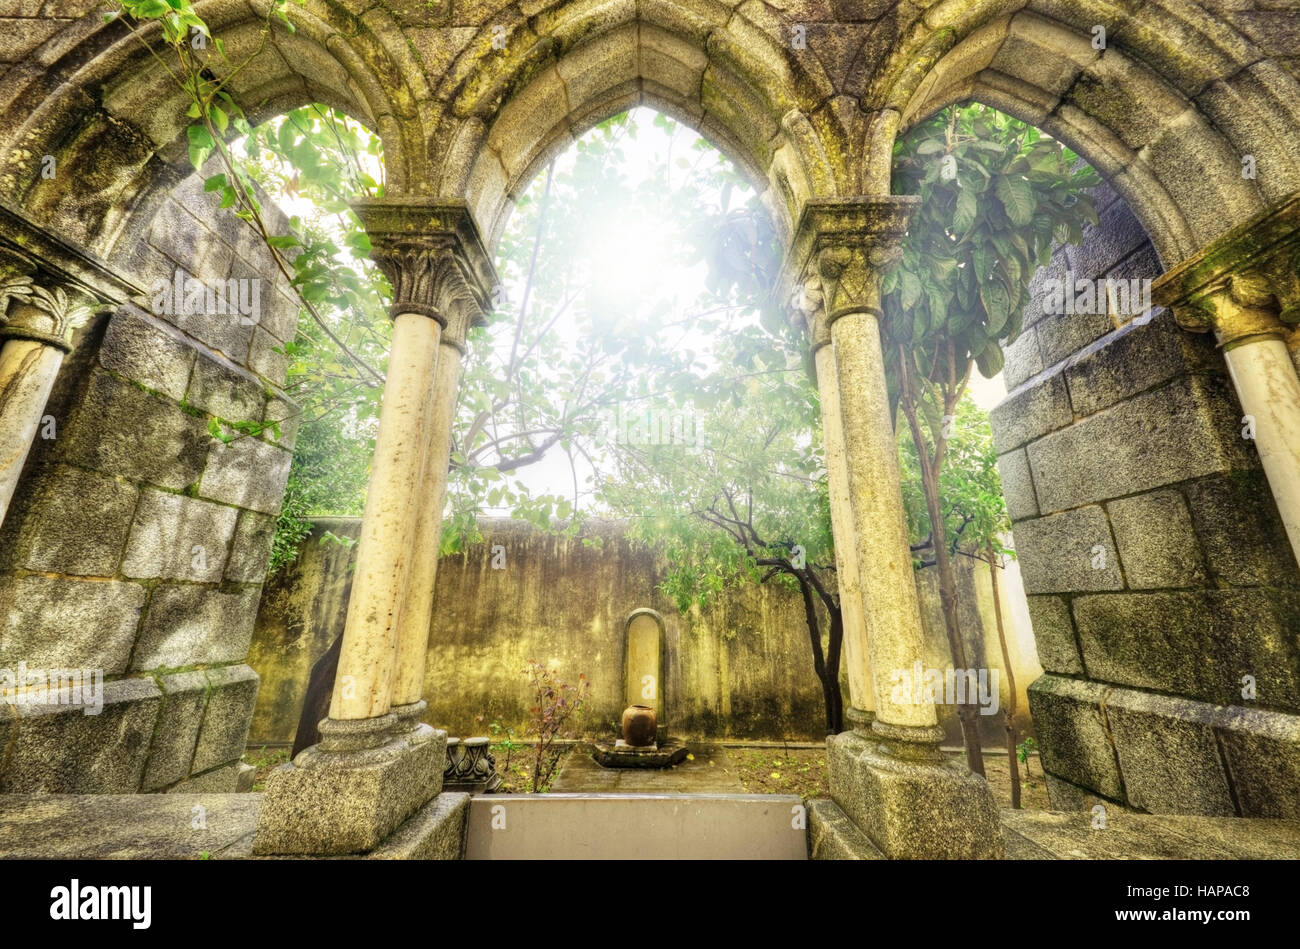 Ancient gothic arches in the myst. Fantasy landscape in Evora, Portugal. - Stock Image